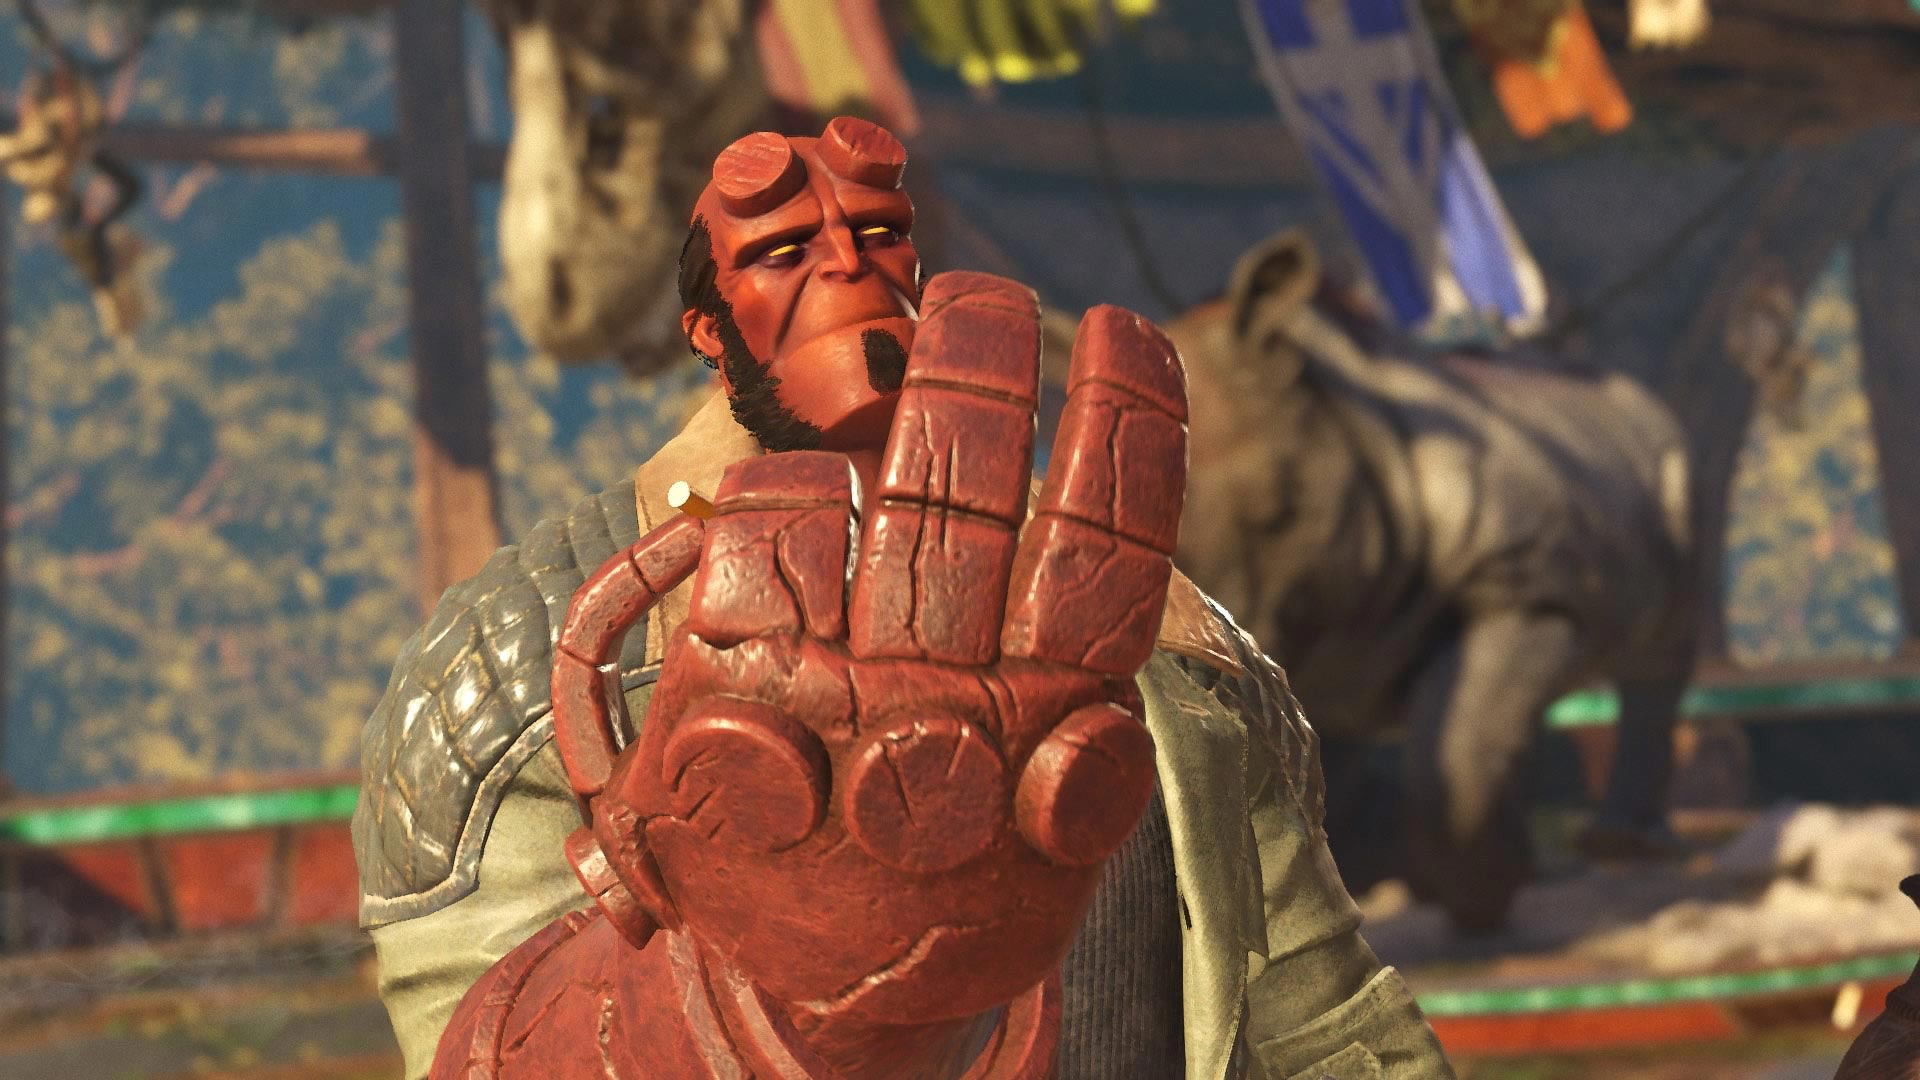 Hellboy in Injustice 2 2 out of 9 image gallery